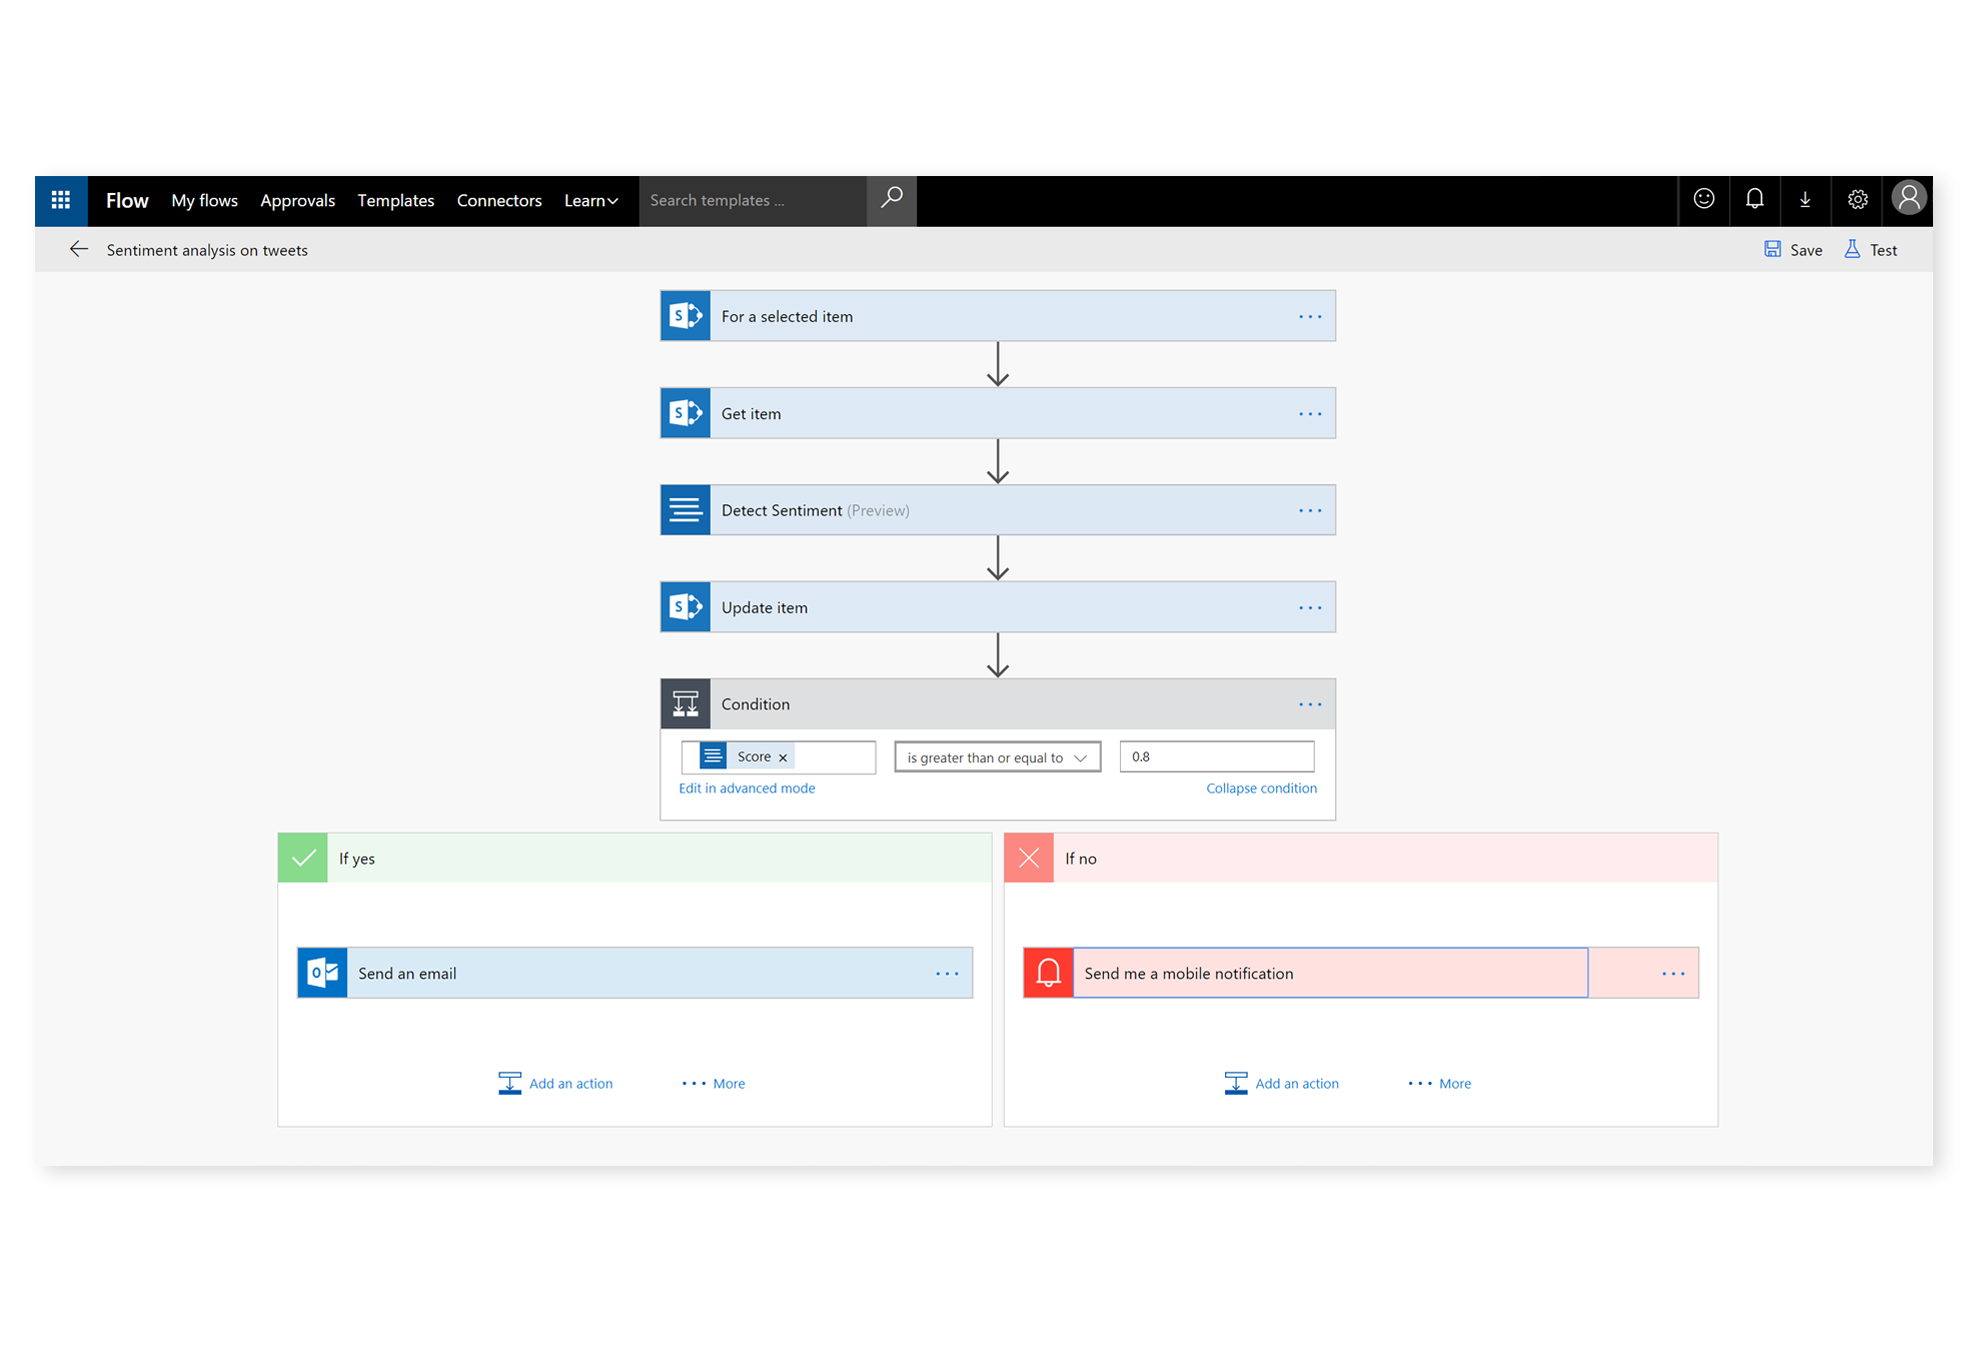 A screenshot of Power Apps showing a visualization of a workflow